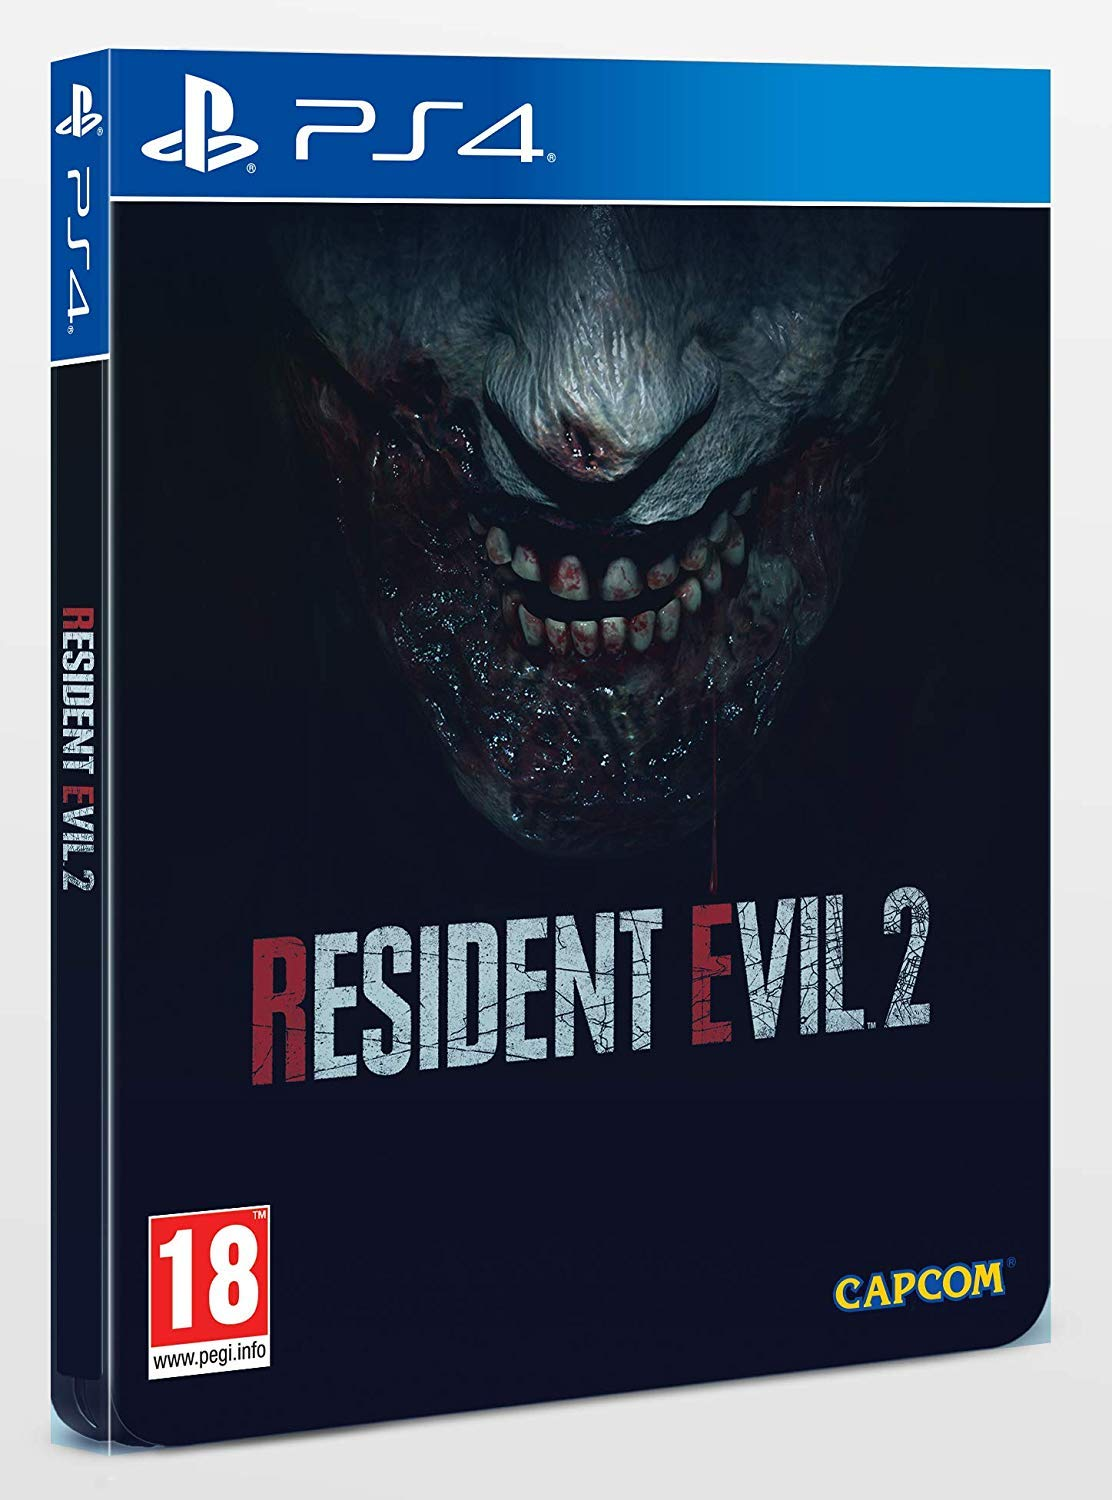 Resident Evil 2 (PC): Amazon in: Video Games